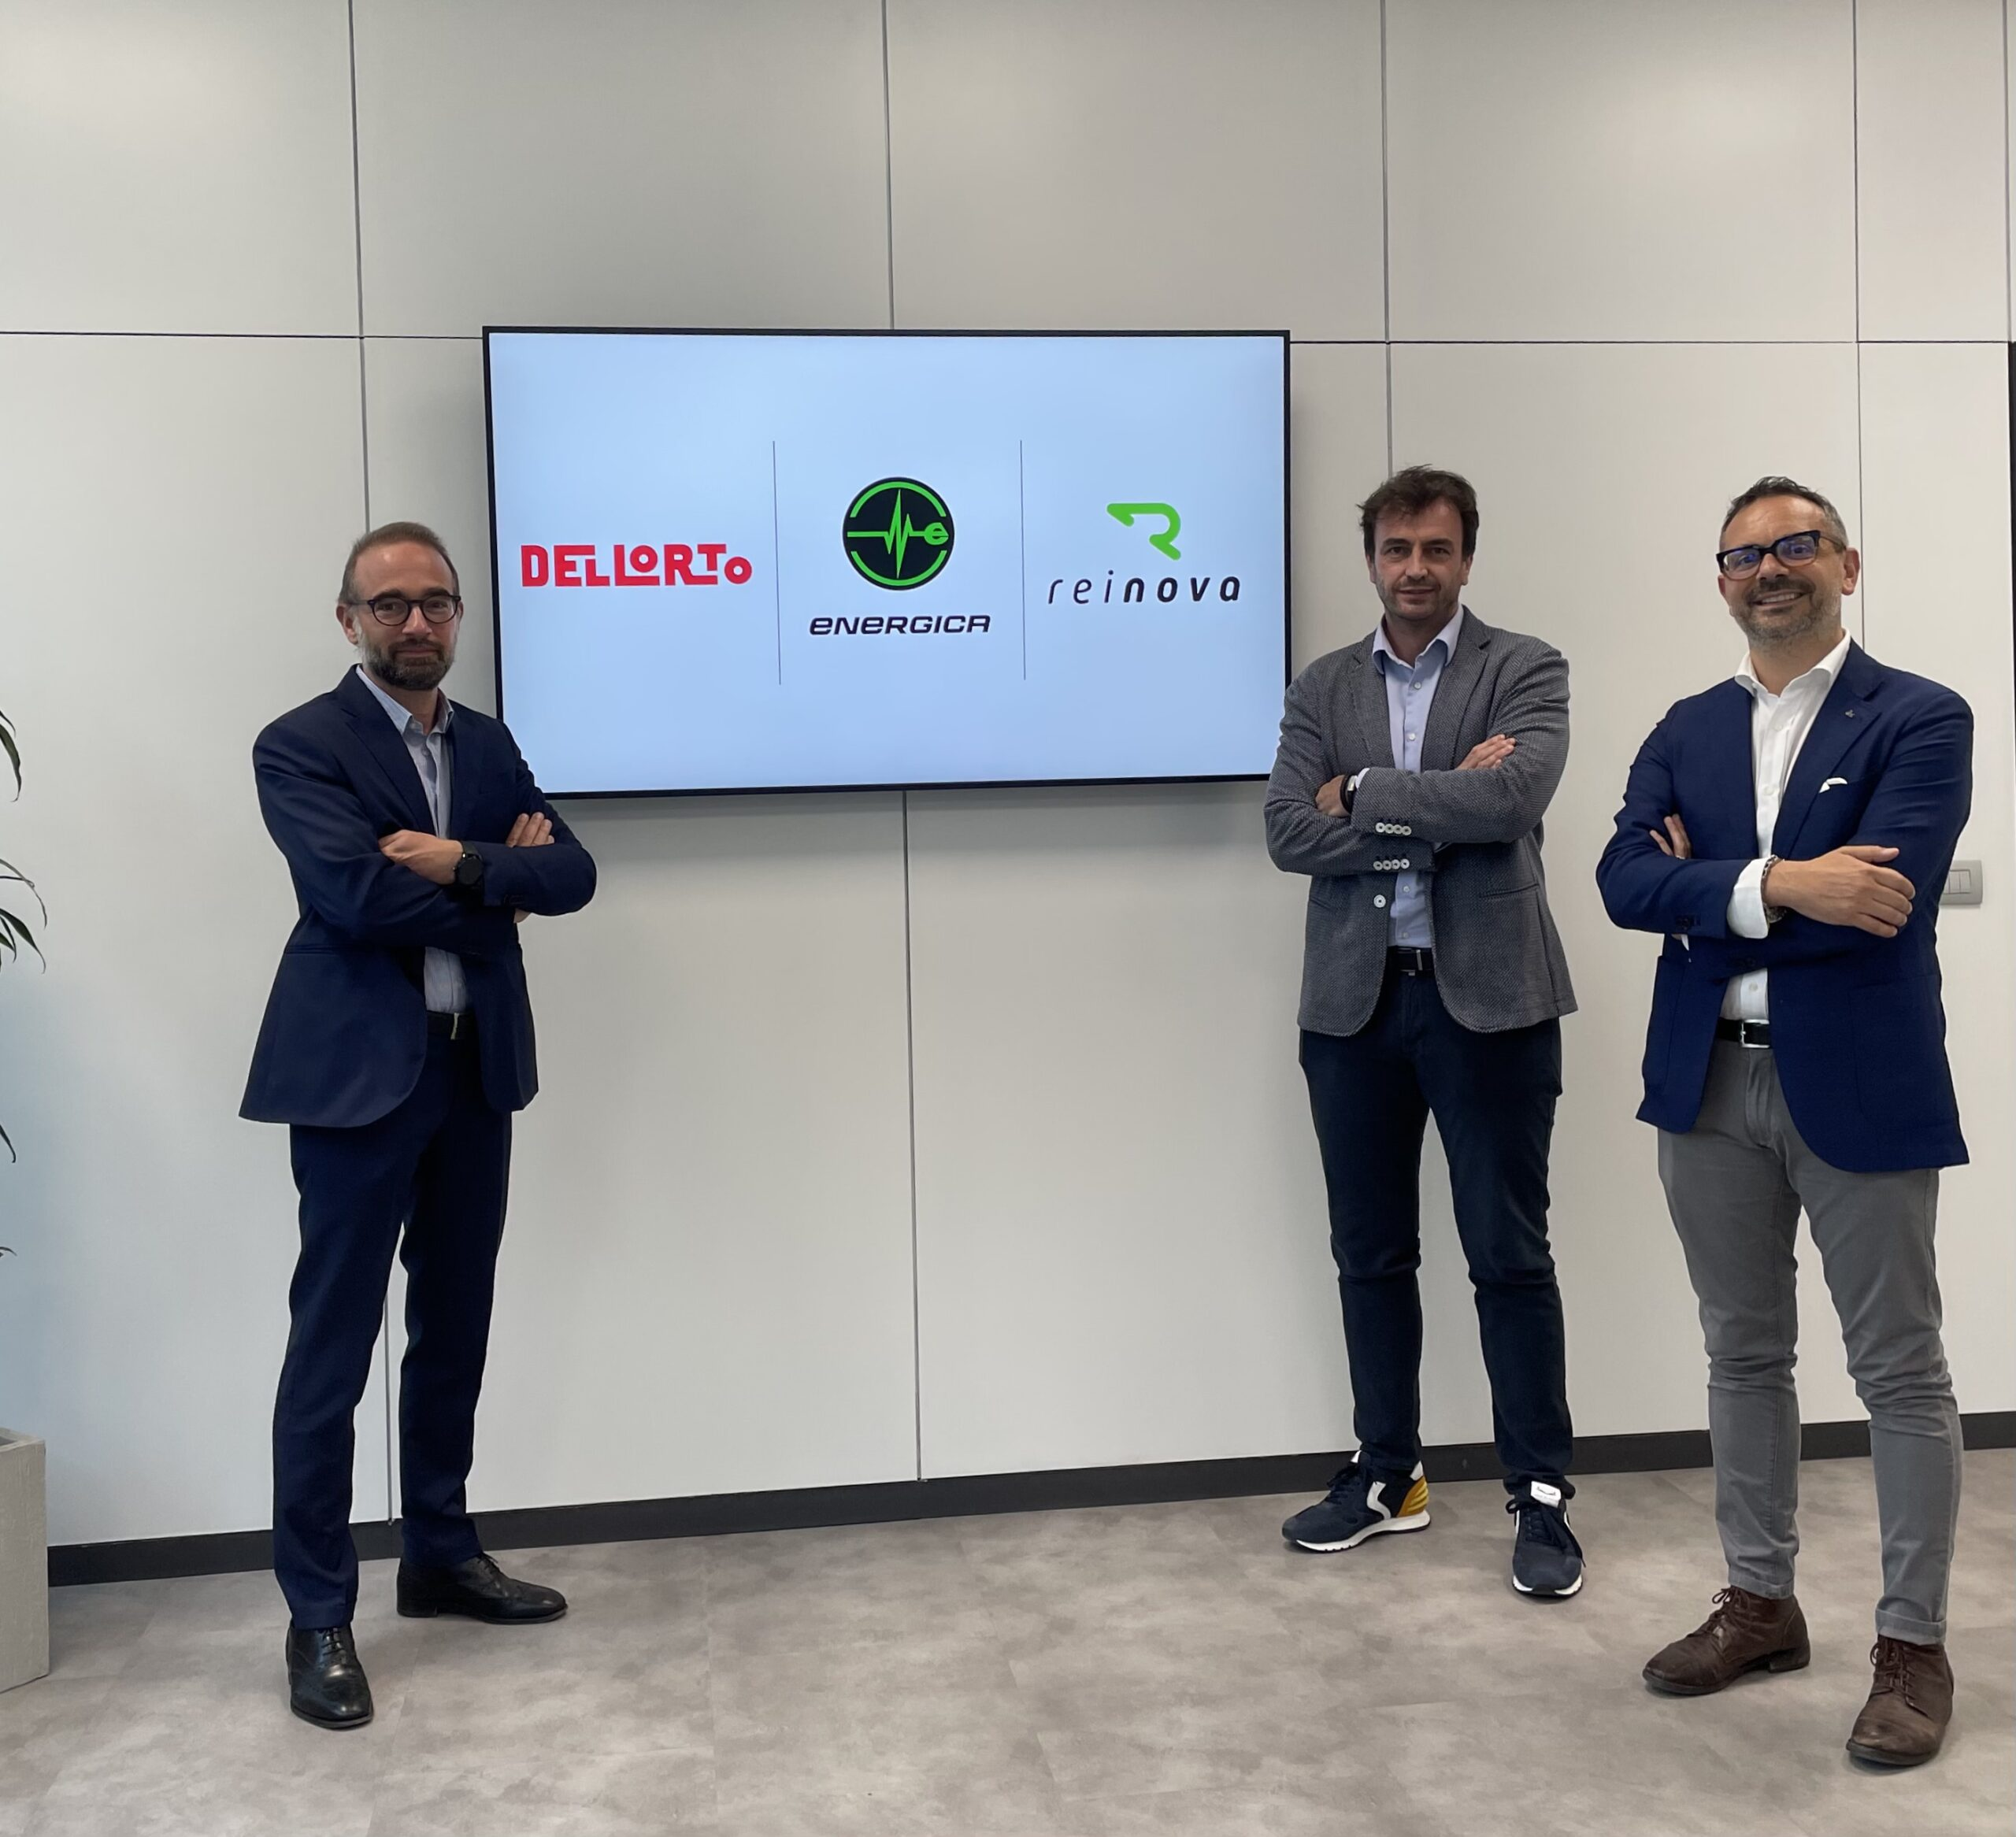 Dell'Orto S.p.A. and Energica Motor Company S.p.A. choose Reinova to continue the E-POWER project, strengthening services to OEMs and expanding the product range to complete the new approach to electric mobility